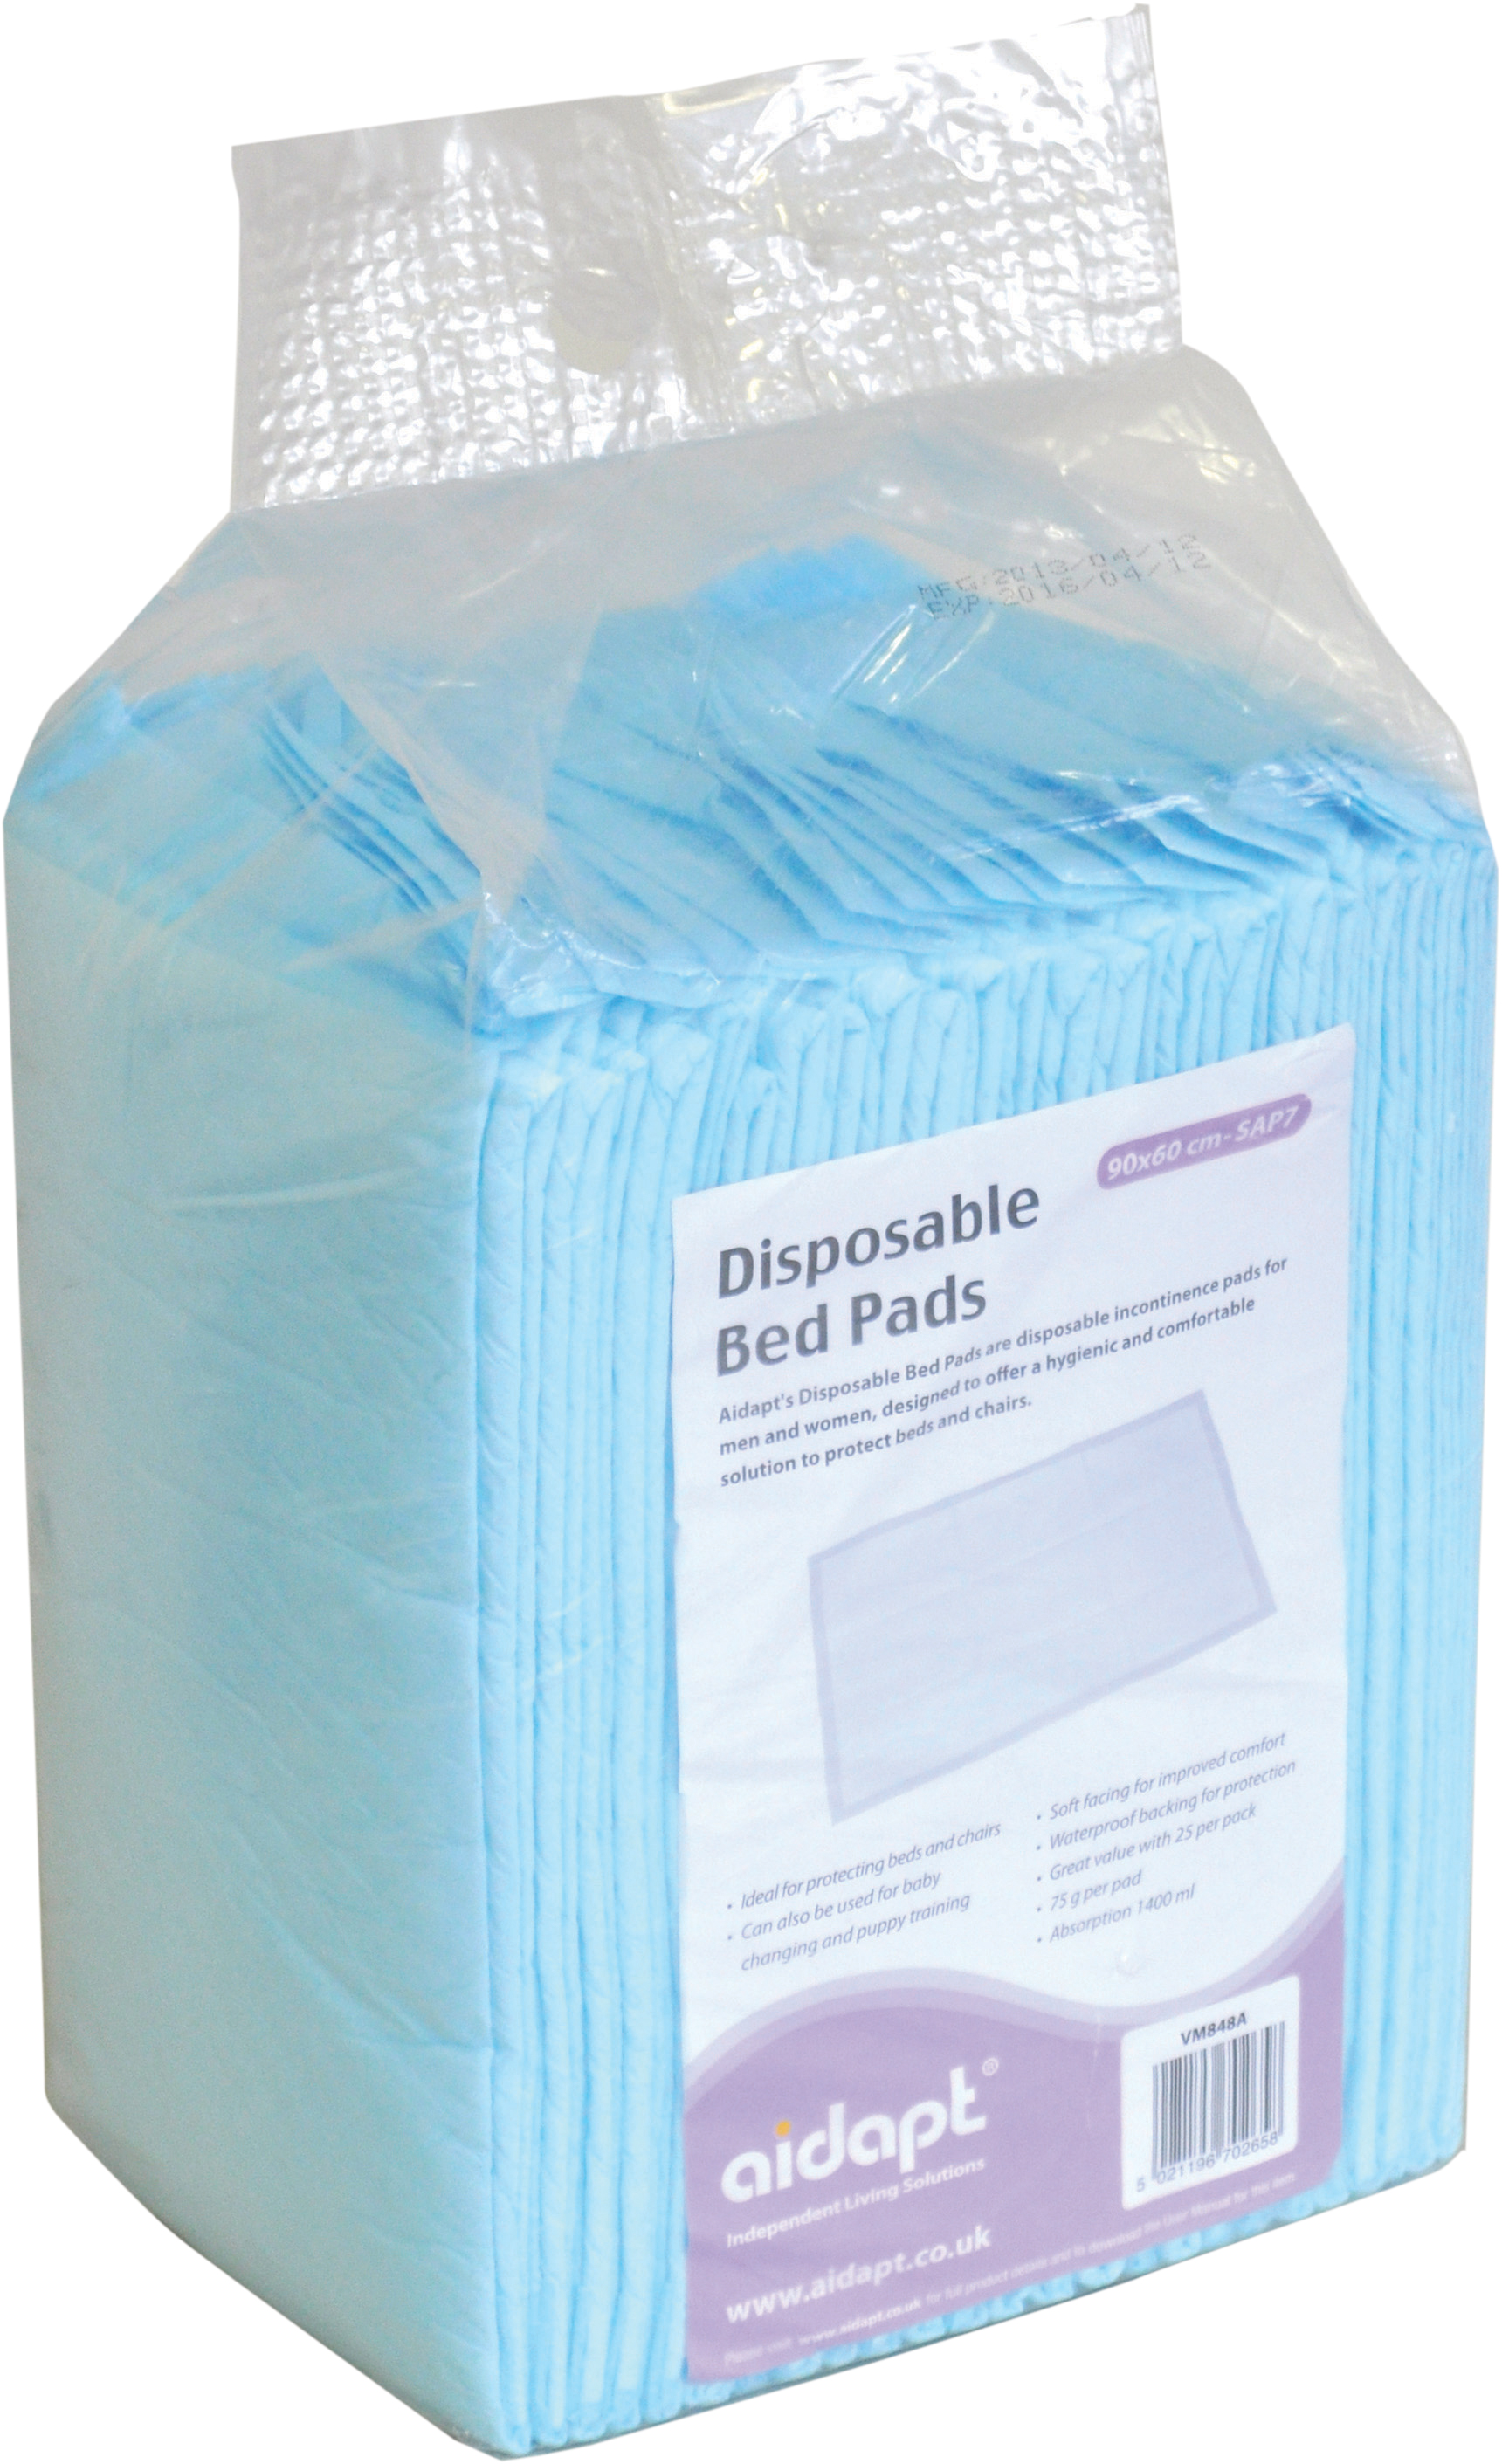 Disposable Bed Pads Aidapt Mobility Aids & Independent Living ...